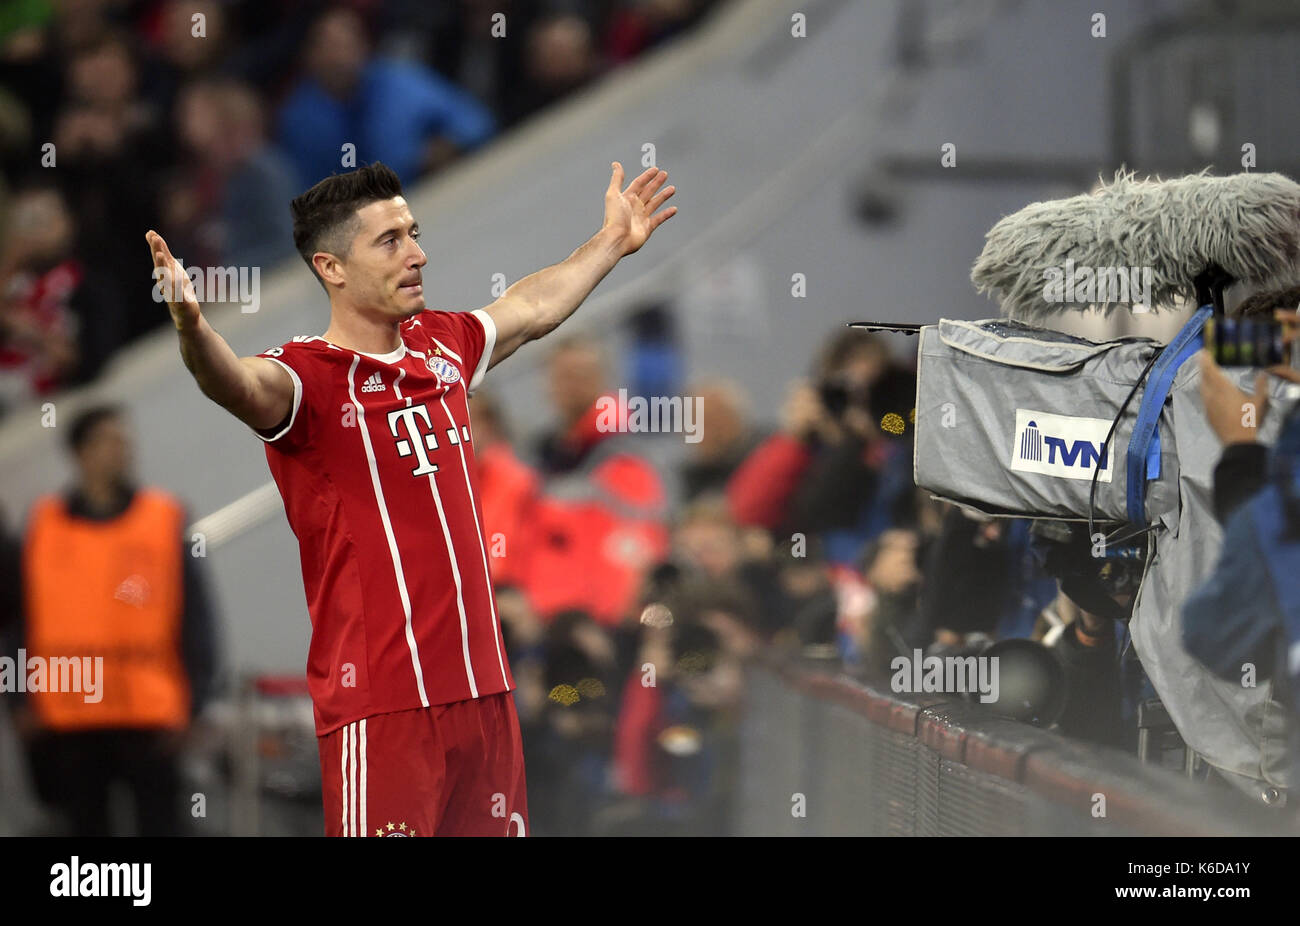 dpatop - Munich's Robert Lewandowski celebrates the 1:0 goal during the Champions League Group B match between Bayern Munich's and RSC Anderlecht at the Allianz Arena in Munich, Germany, 12 September 2017. Photo: Andreas Gebert/dpa - Stock Image